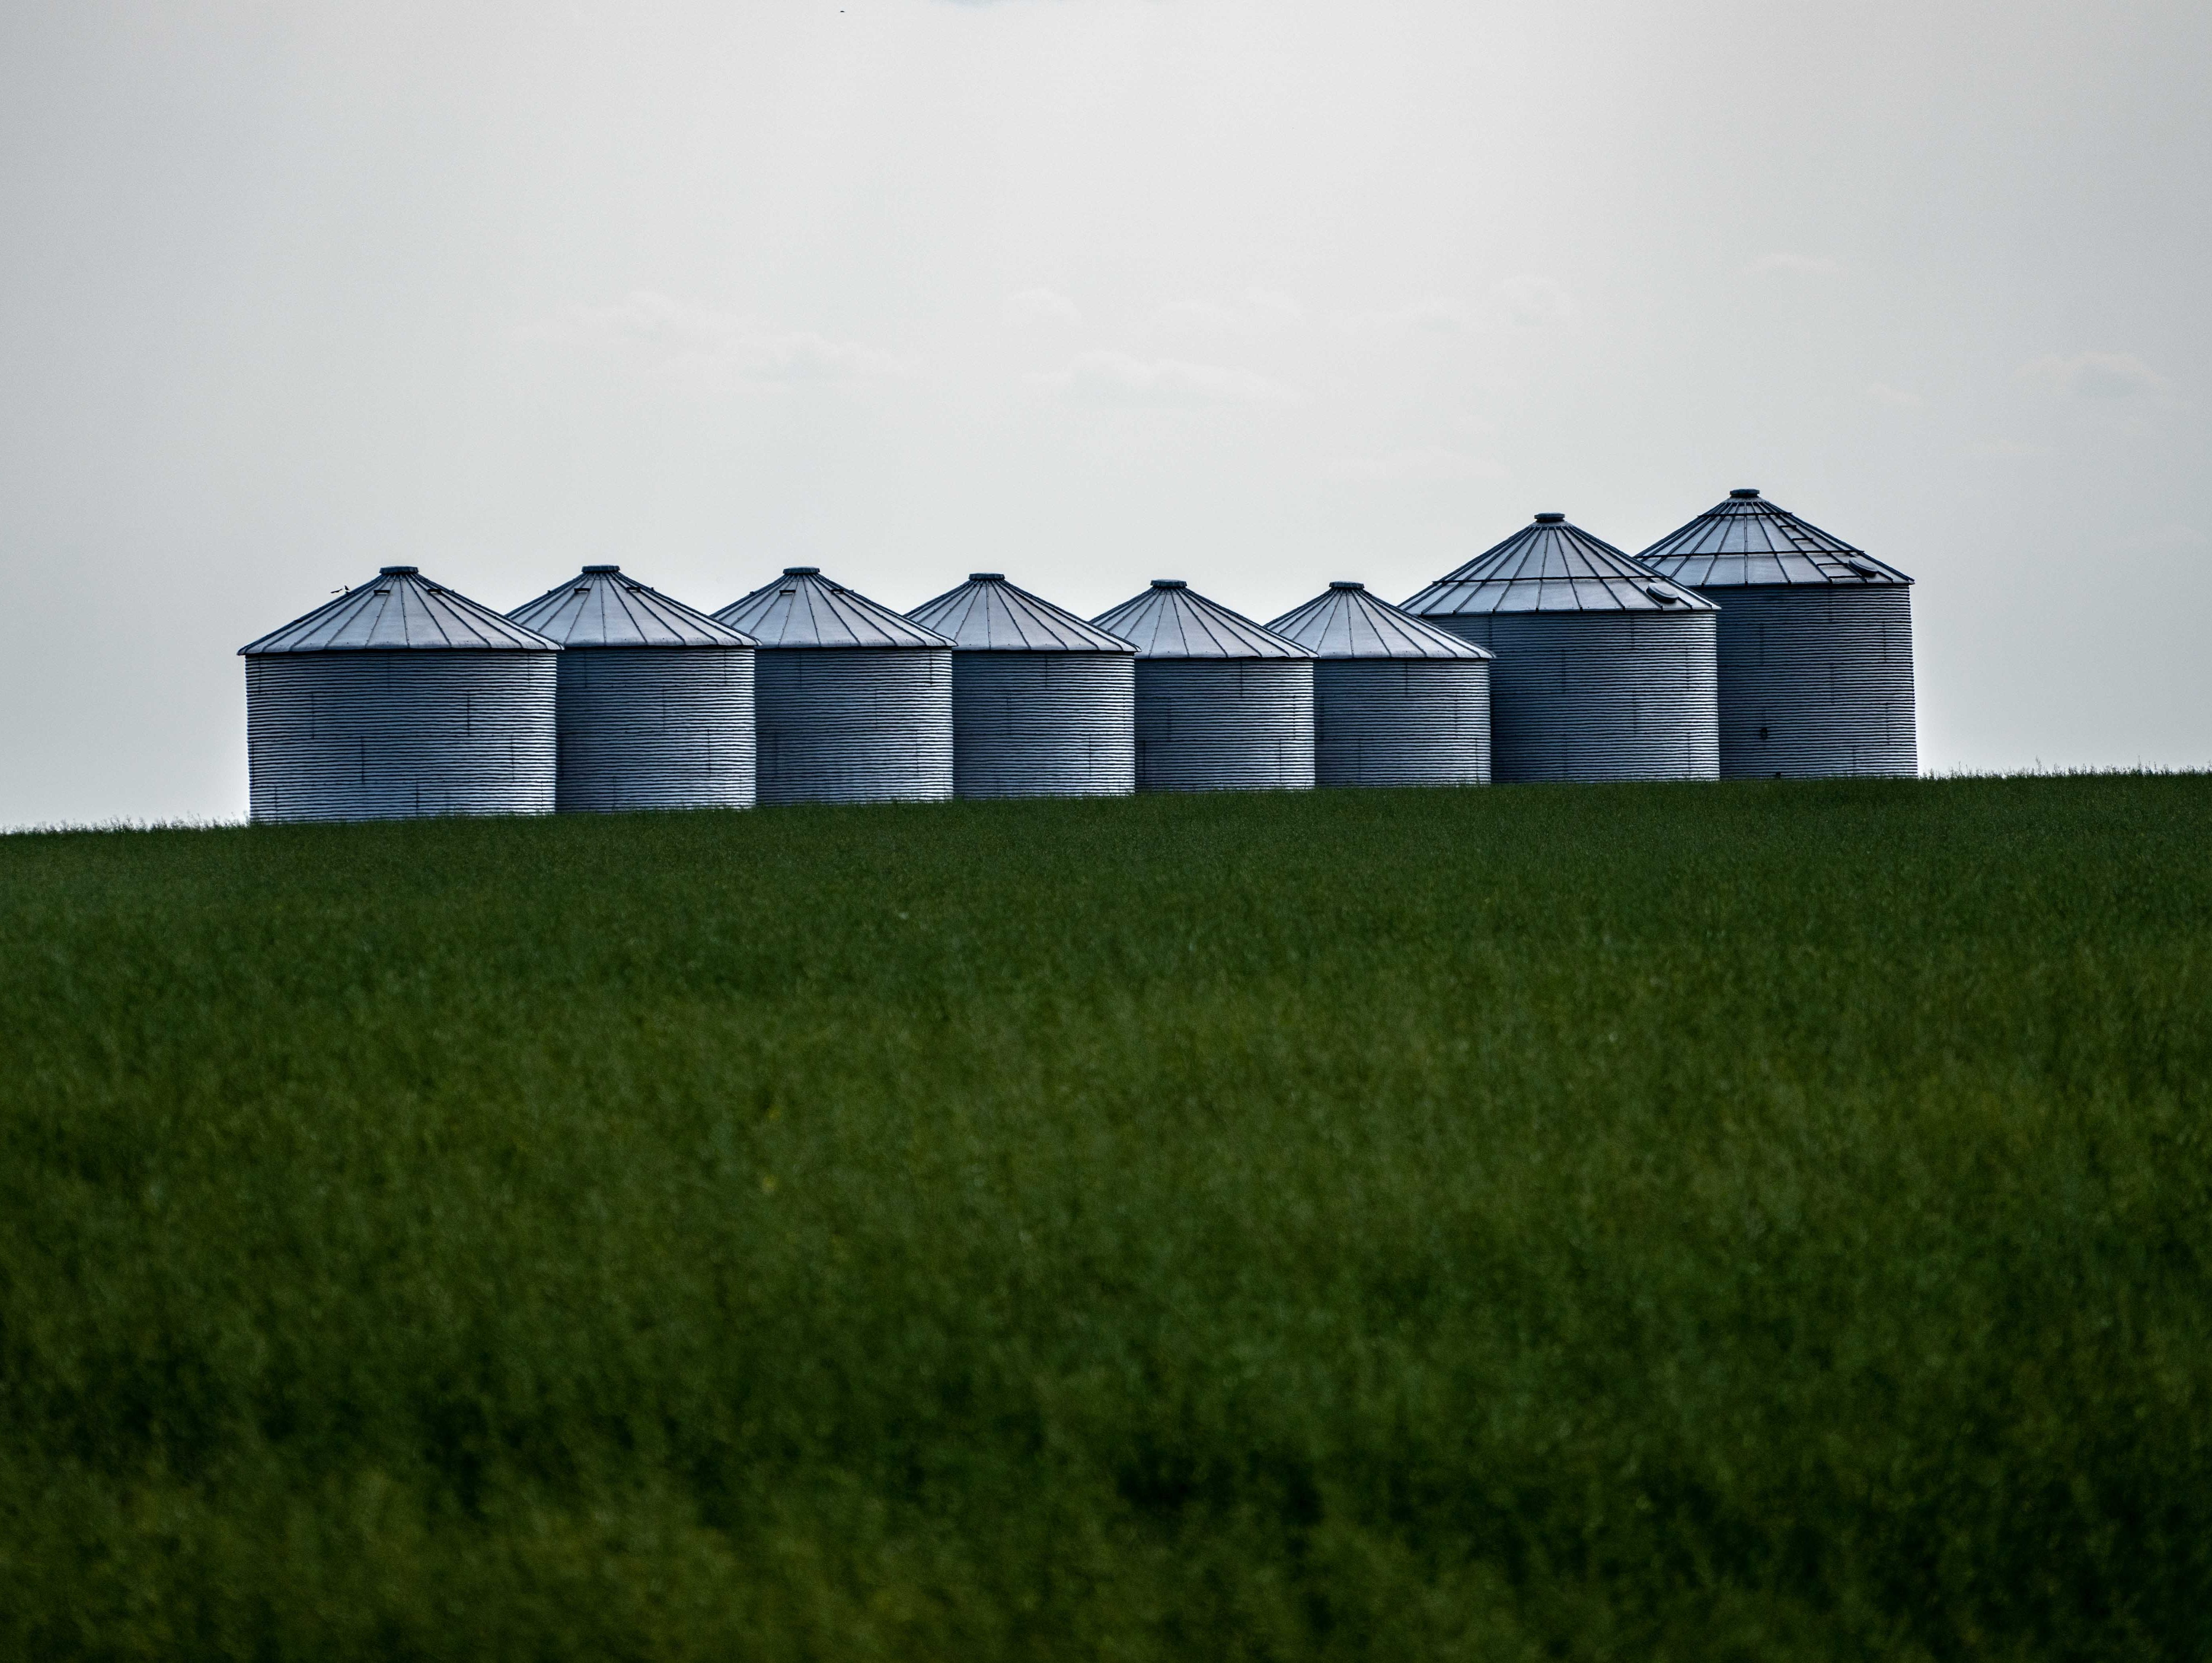 Grain bins are one of the few signs of human habitation in this area of greater Lustre.